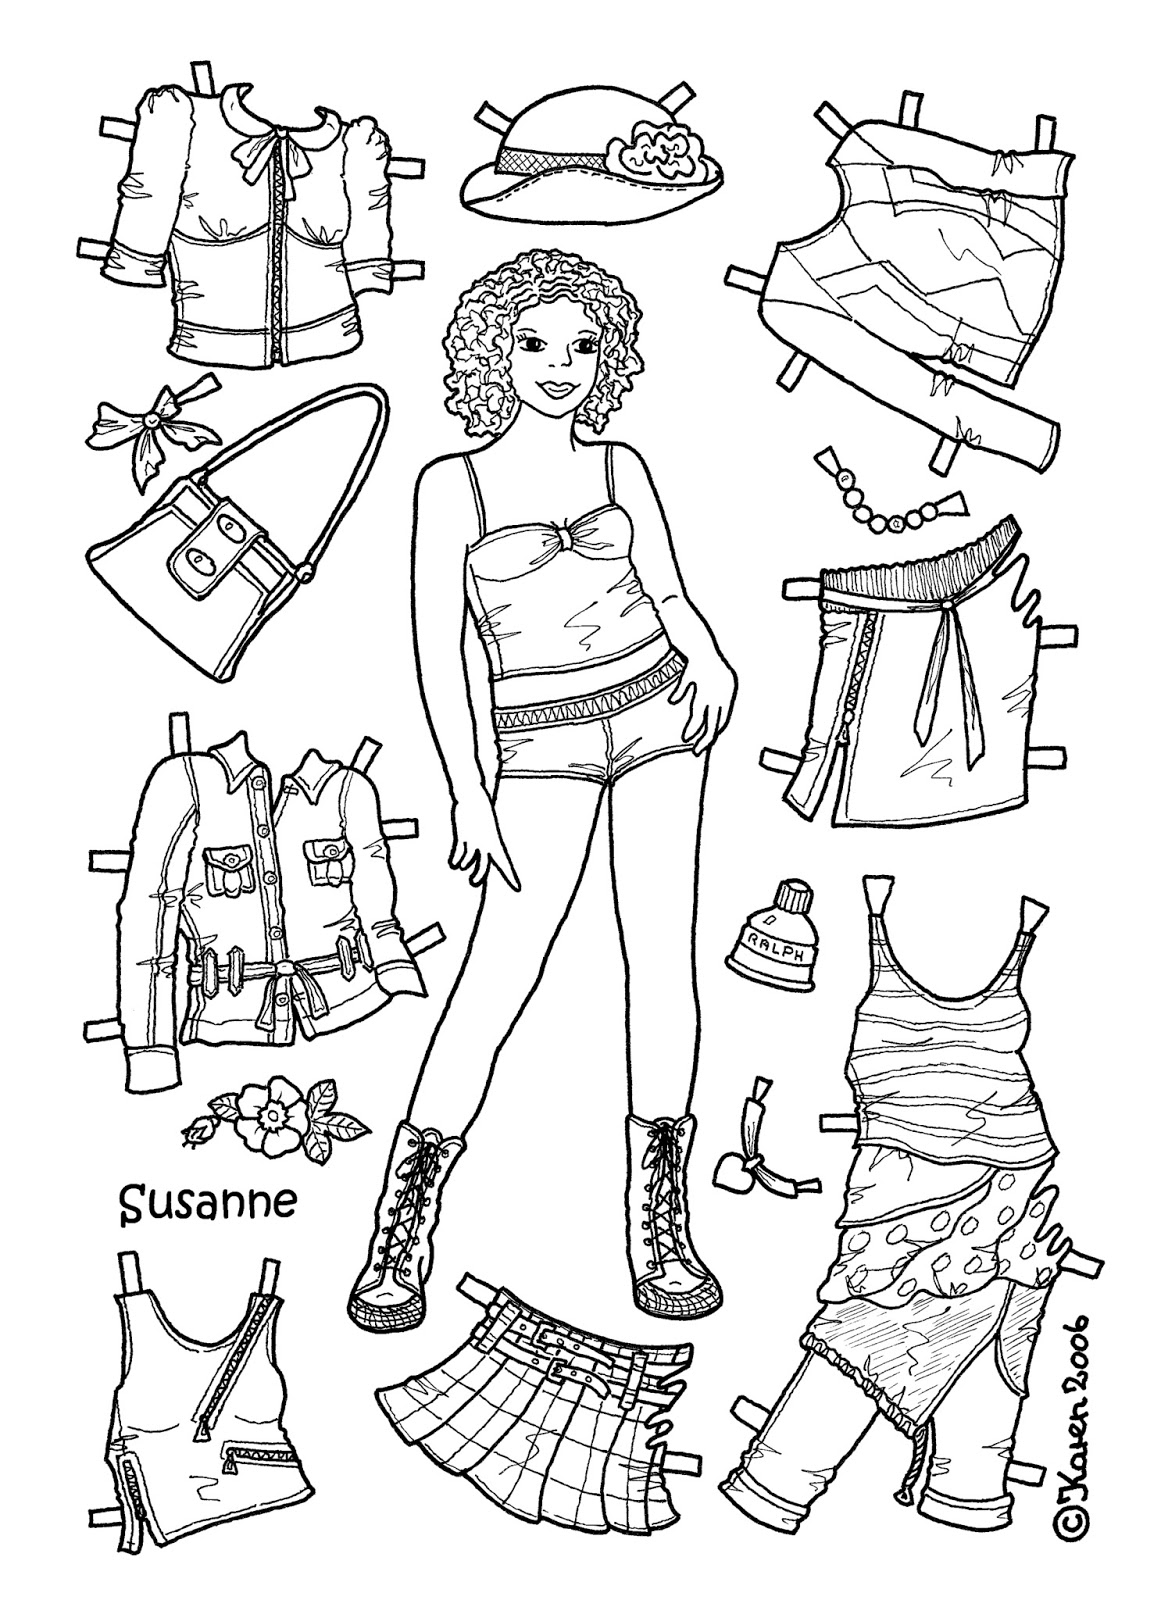 Karen`s Paper Dolls: Susanne 1-6 Paper Doll to Colour